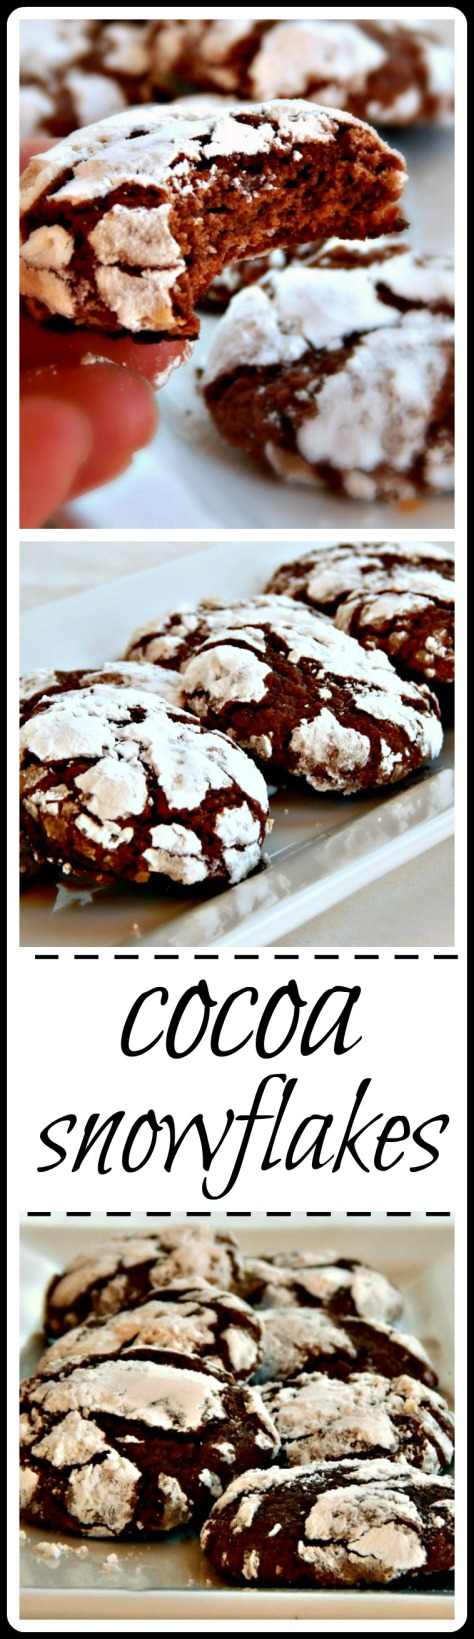 Cocoa Snowflakes - a fave! I love the crinkly crispy crust and chewy center!